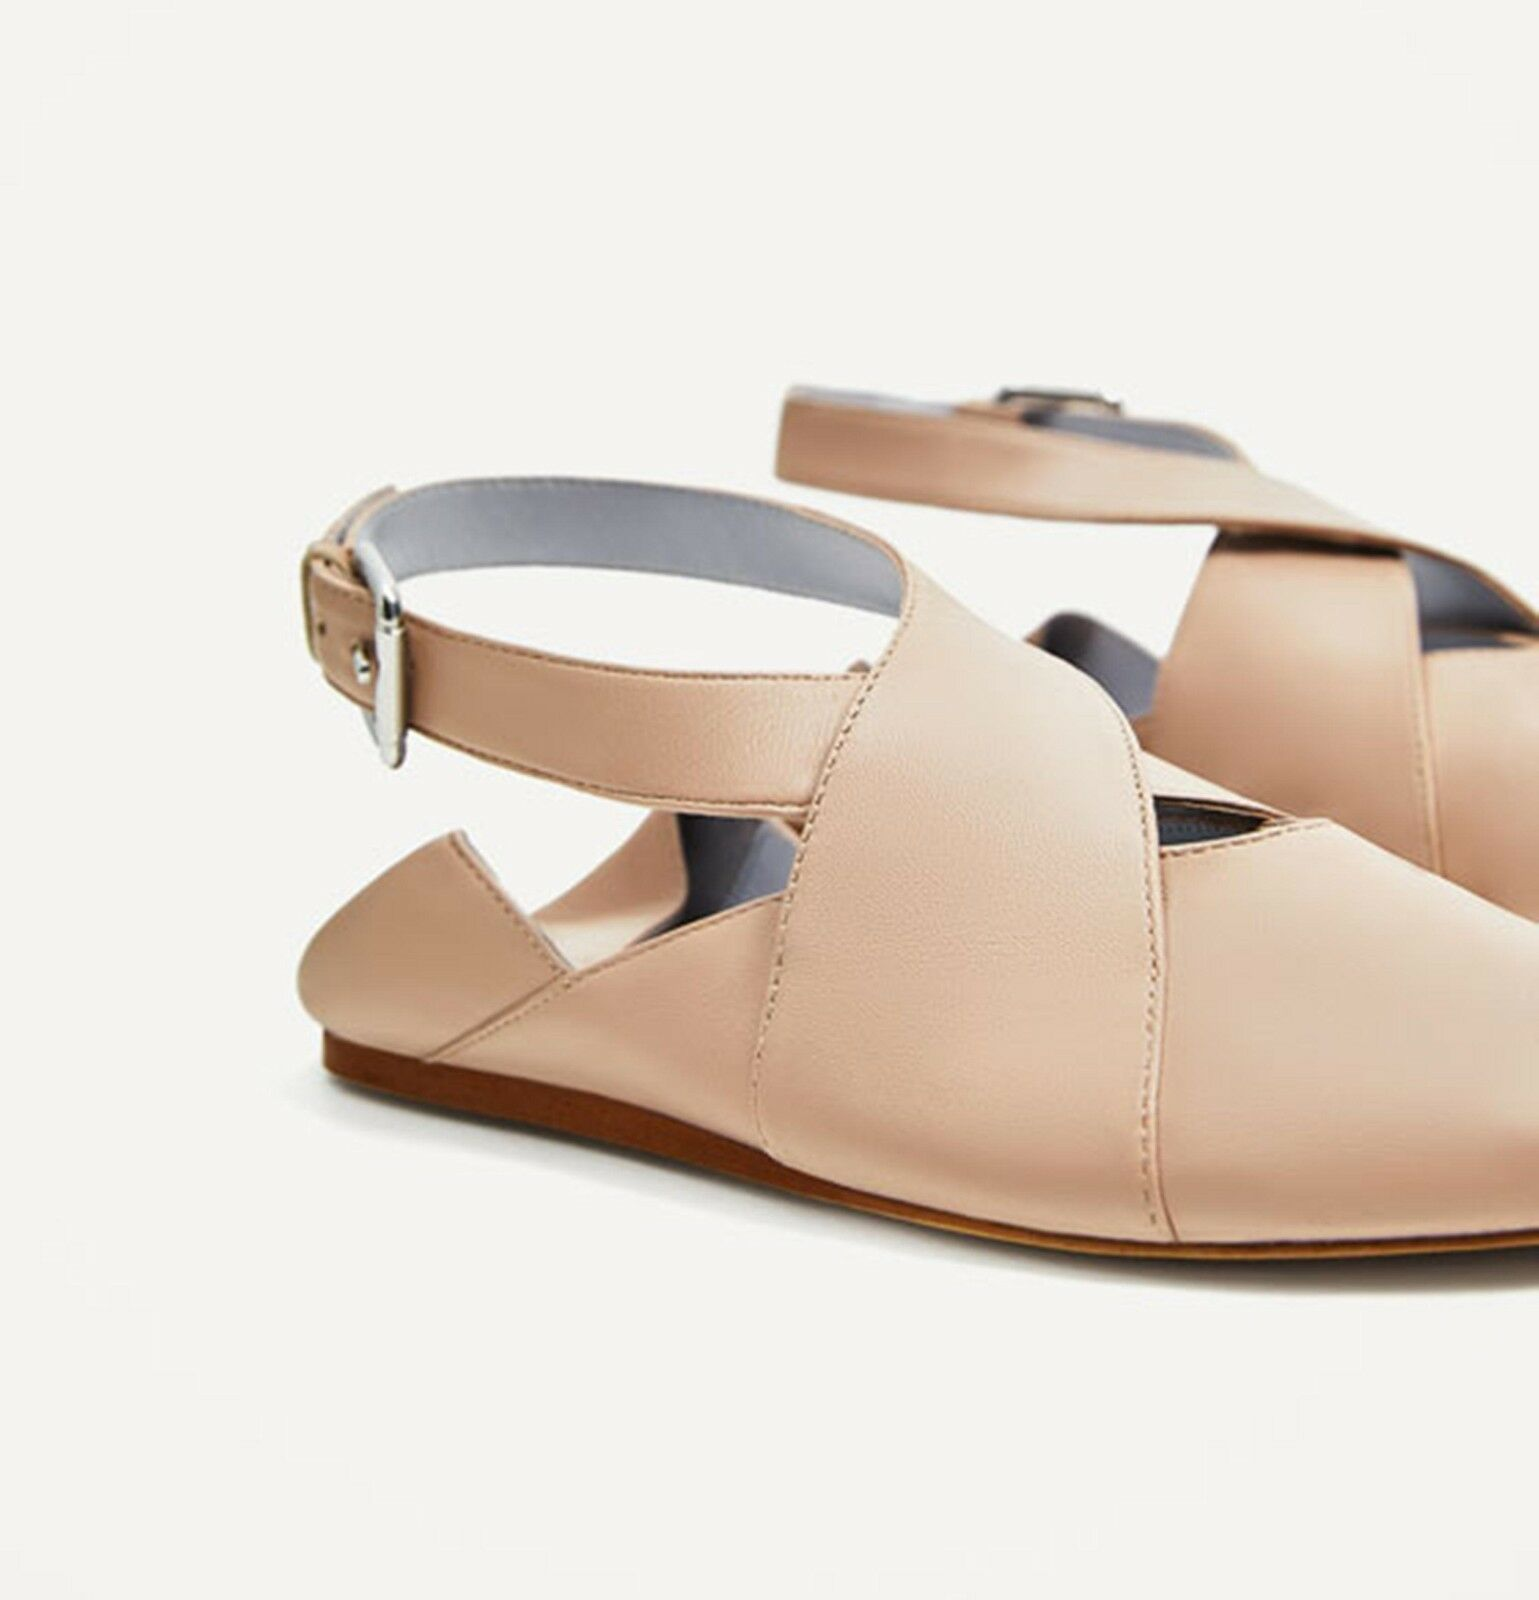 ZARA BUCKLE FLAT LEATHER SHOES WITH BUCKLE ZARA NUDE SIZE 6 UK 39 EU 8 US 590e8b